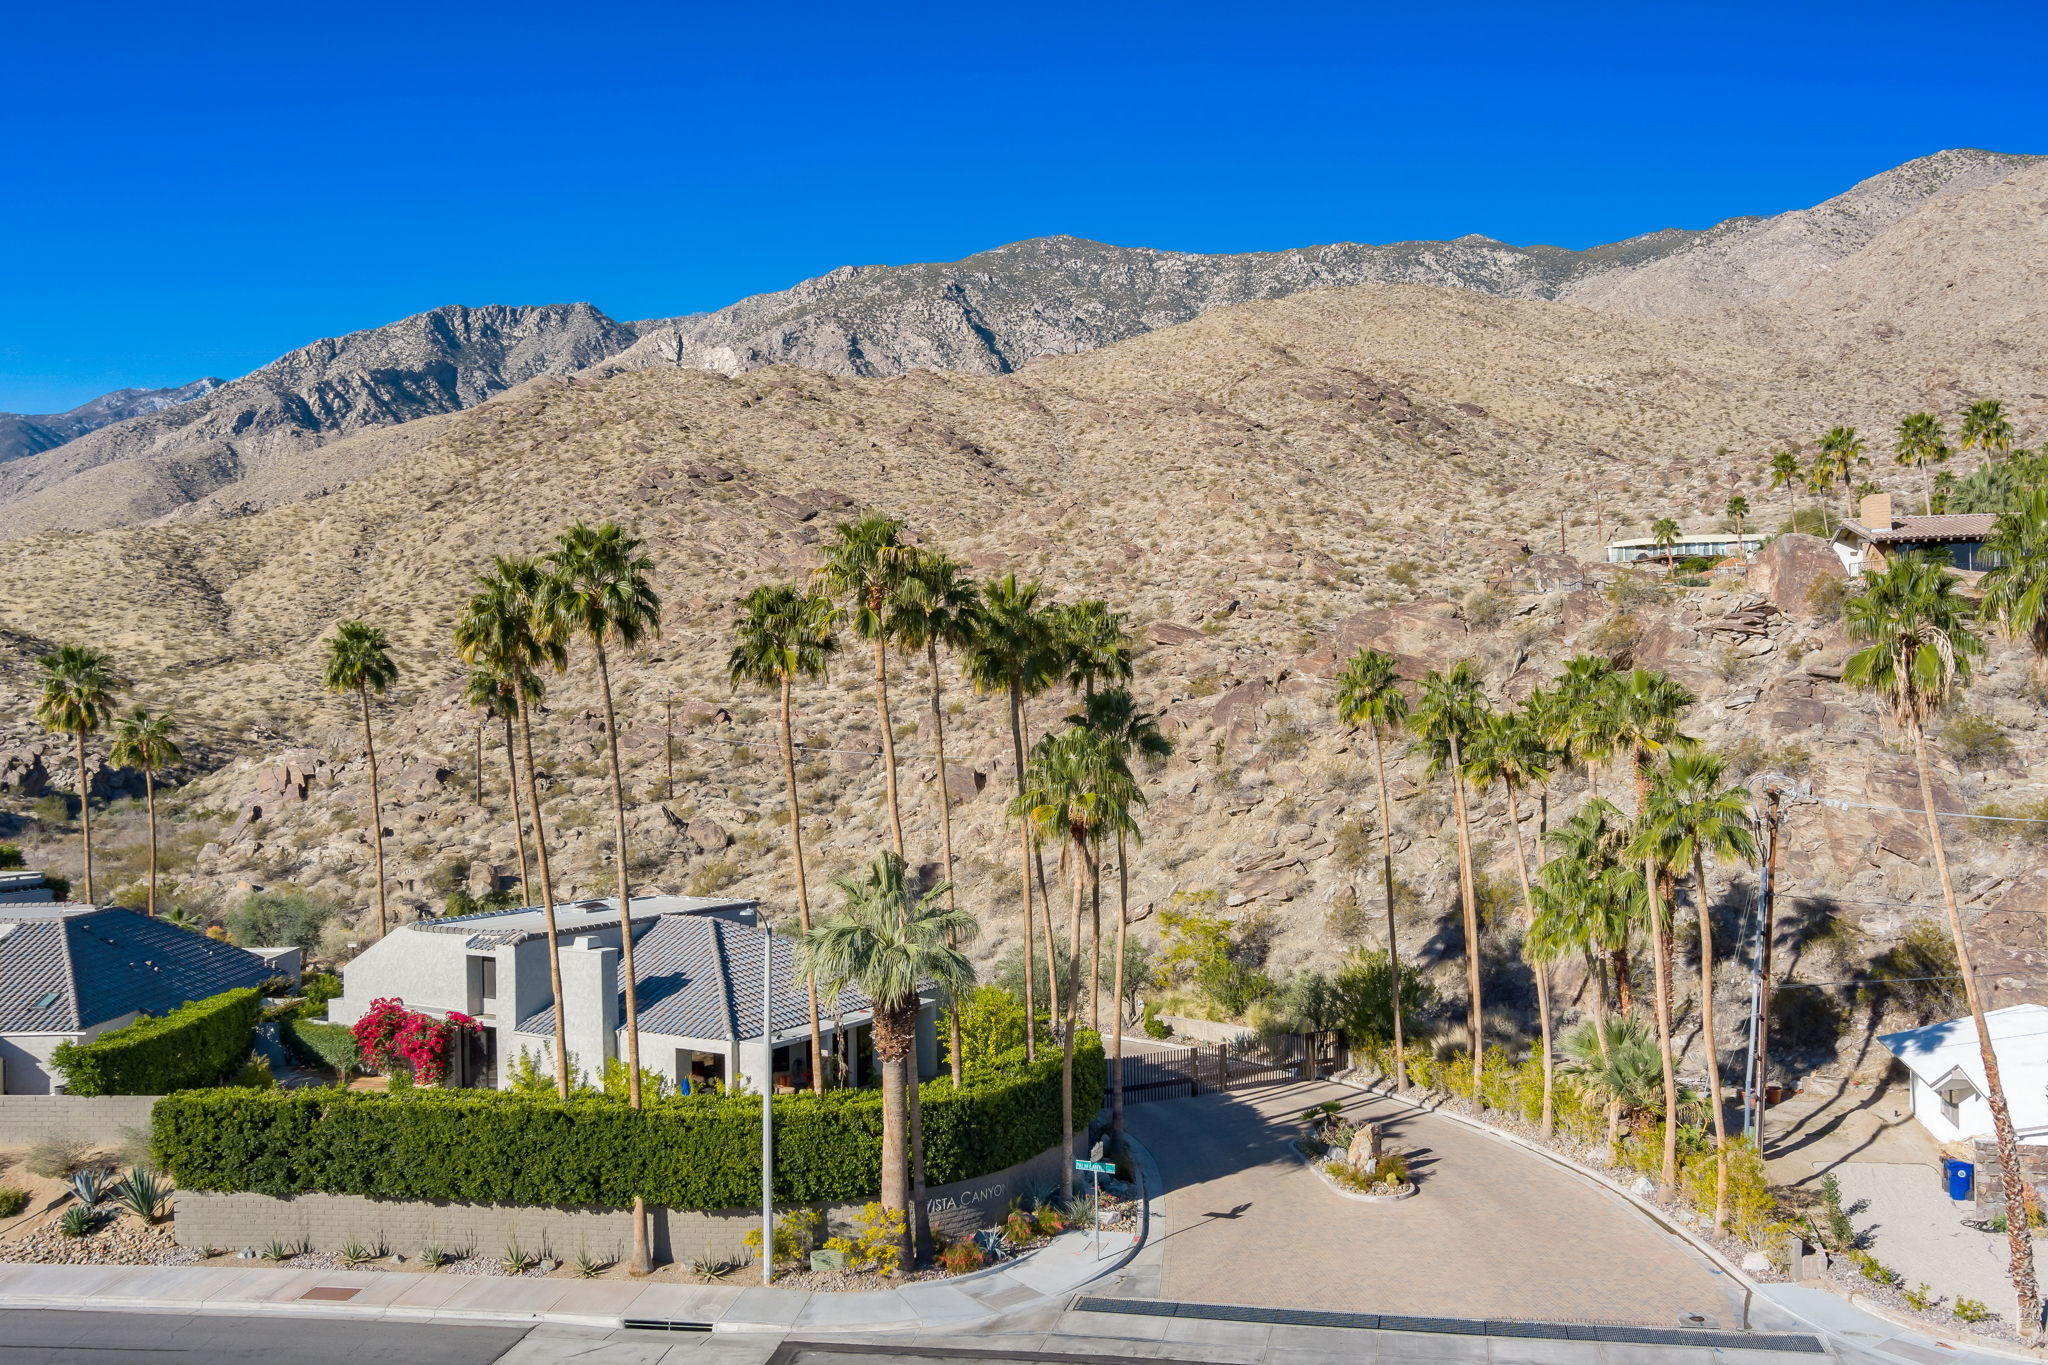 Rare opportunity to own in the highly sought after gated community of Vista Canyon in South Palm Springs. Theperfect location of this stunning home brings the outside in with panoramic south mountain views. This is truly desert living at its finest. The large open floor plan connects you to a dining area, living room, fireplace, wet bar, high ceilings with 3 skylights and a wall of glass, all looking out to the large patio withprivate pool, complete with custom swim up bar, and spa. A remote controlled awning provides the patio with shade from the afternoon sun. The2 master suites and third bedroom/office/den all have private outdoor patios. The upstairs master suite opens up to a deck, which offers amazing south/east mountain views. The bright kitchen, upgraded with new granite counters, is attached to a breakfast area that leads to a private patio. New HVAC unit installed in 2017 and warrantied till 2027. This home has ample storage including a 2 car garage with custom storage cabinets and flooring. The laundry room is equipped new washer and dryer. This complex is gated on land you own (fee simple). There are only 29 homes, 2 pools and spas, and a full size tennis court. Vista Canyons is close to hiking trails, golf, world class shopping and 5 minutes drive to  downtown Palm Springs. The beauty of this complex is accented by the magnificent desert landscape and new paver tiles throughout the complex.